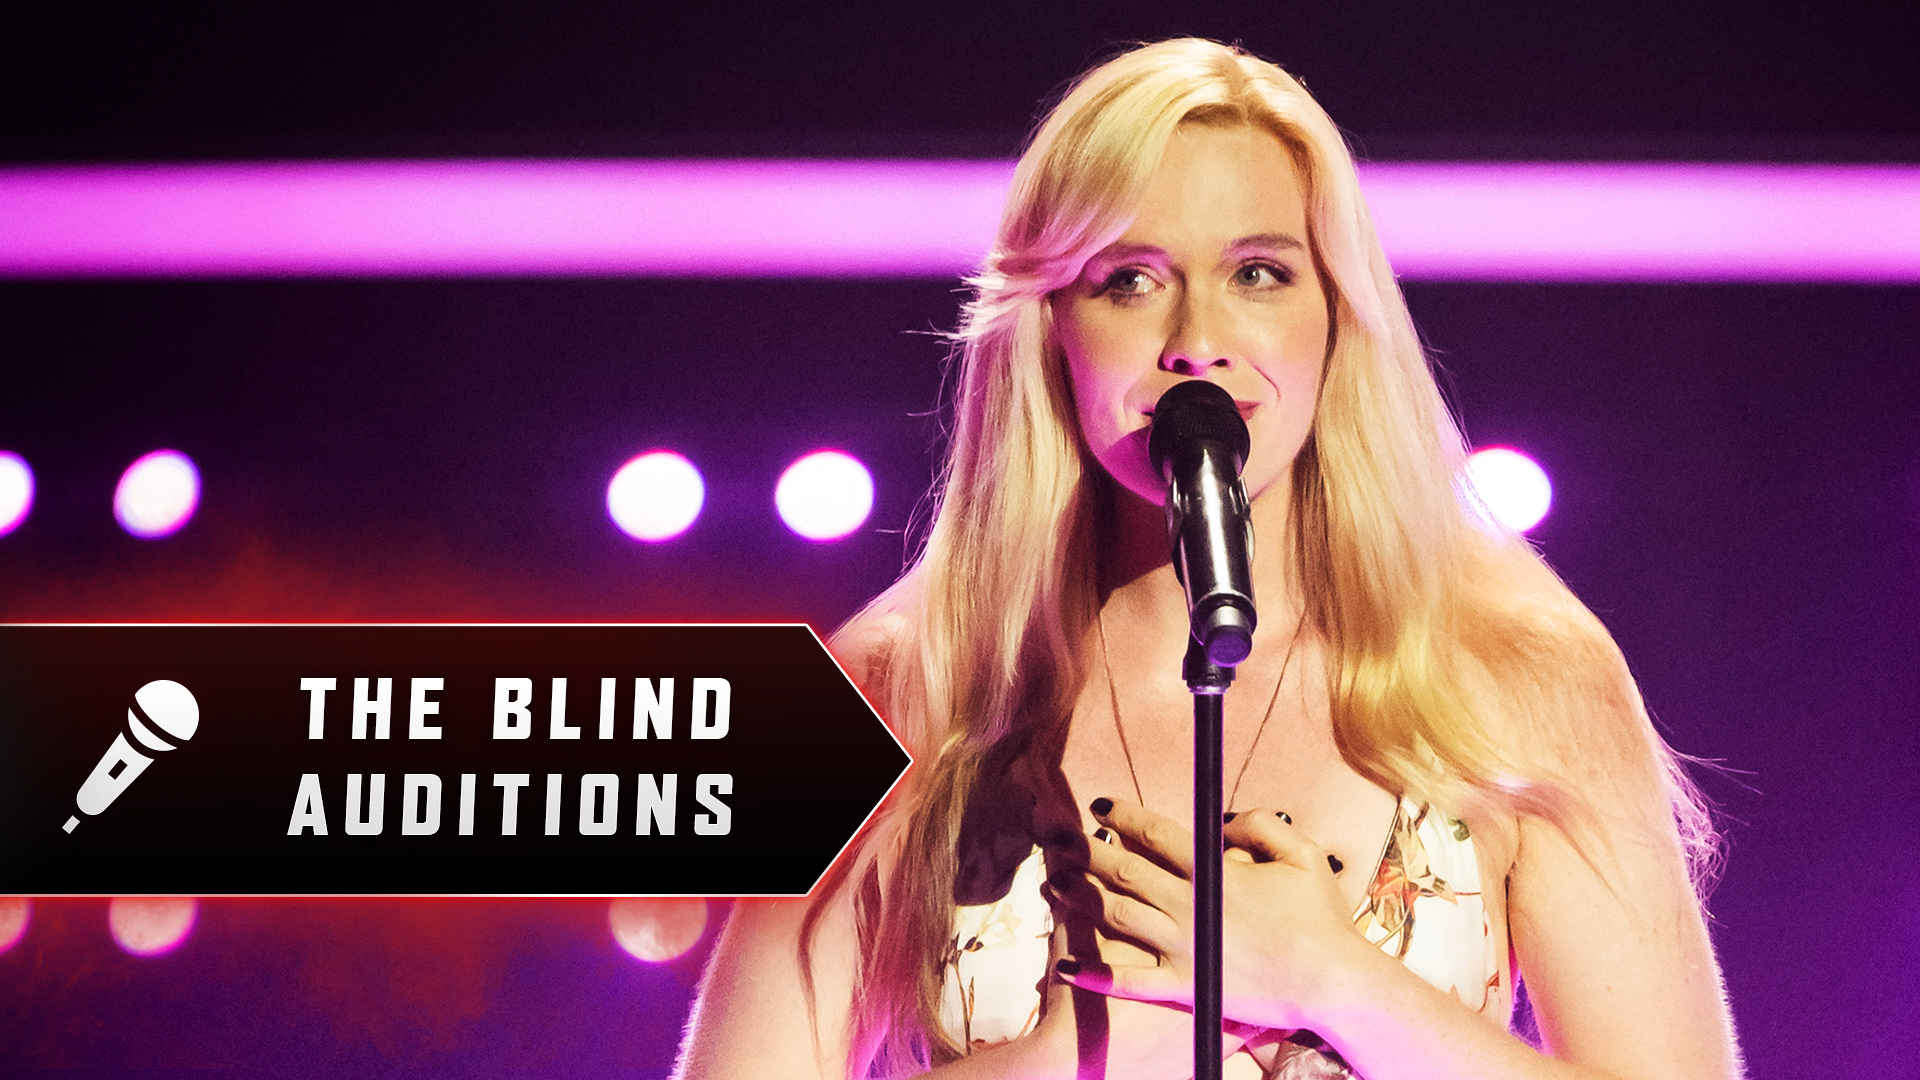 What songs were on The Voice Australia last night? Episode